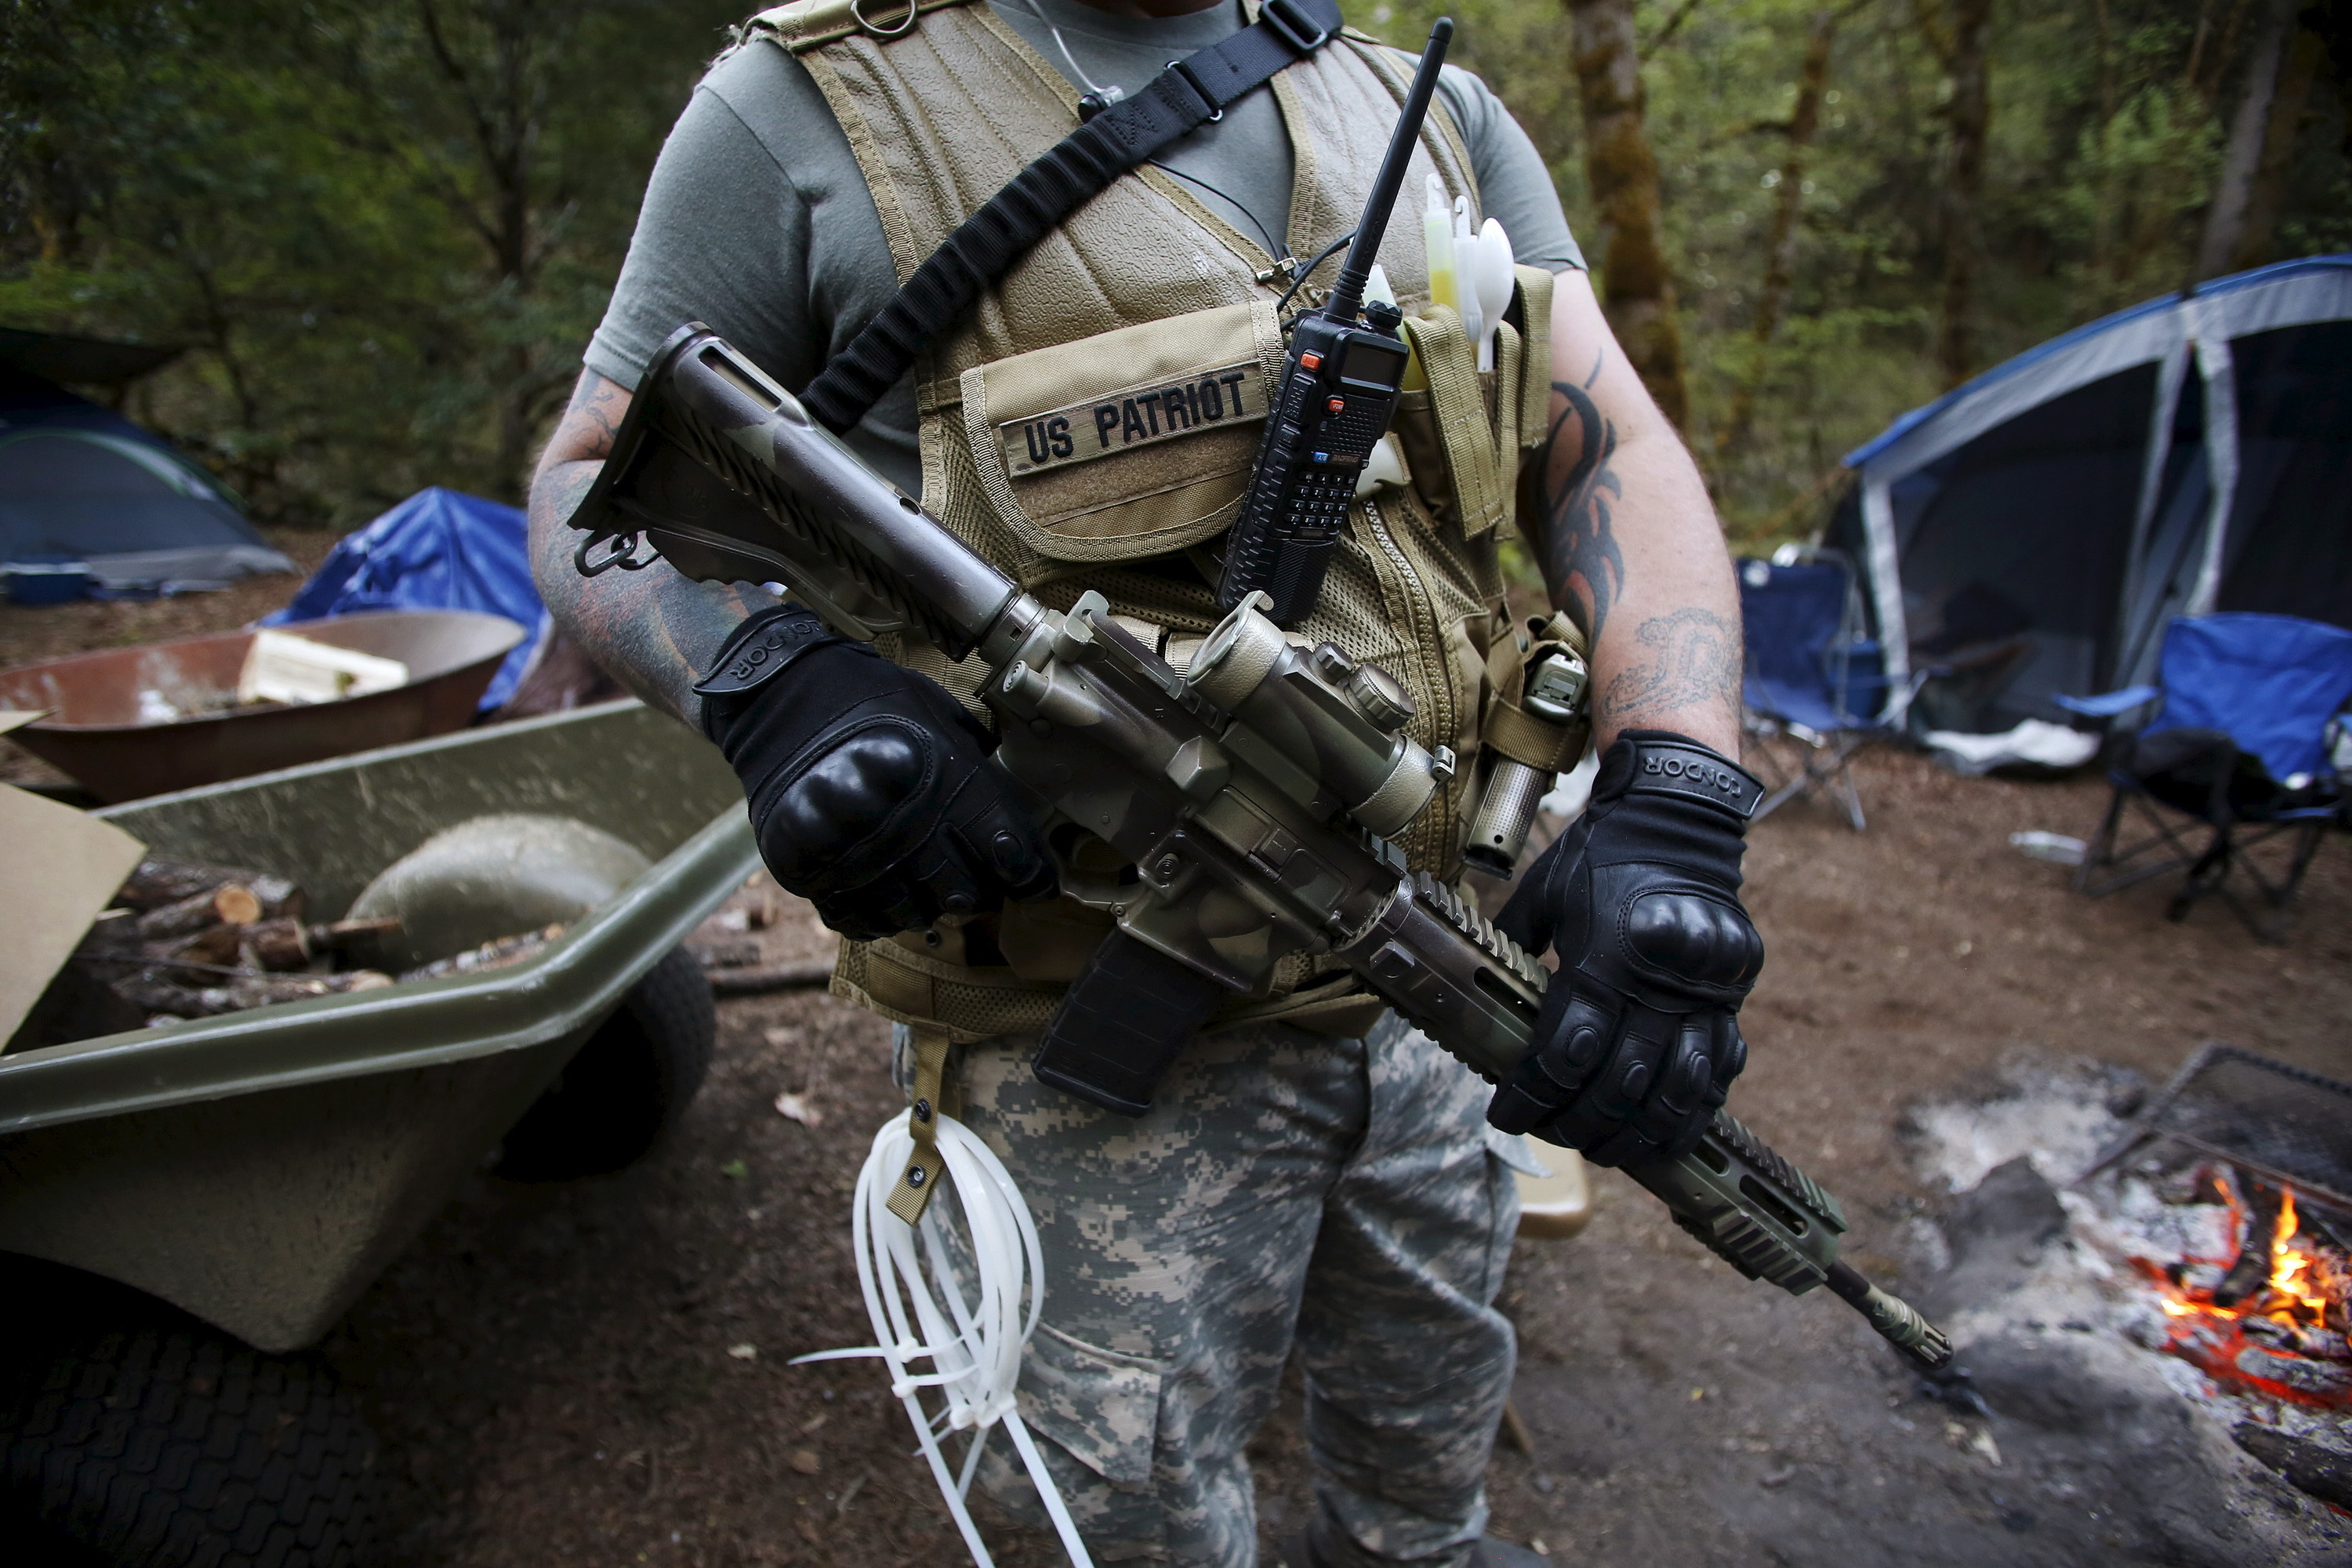 A man wearing tactical gear, carrying a gun, and with zip ties hanging from his vest